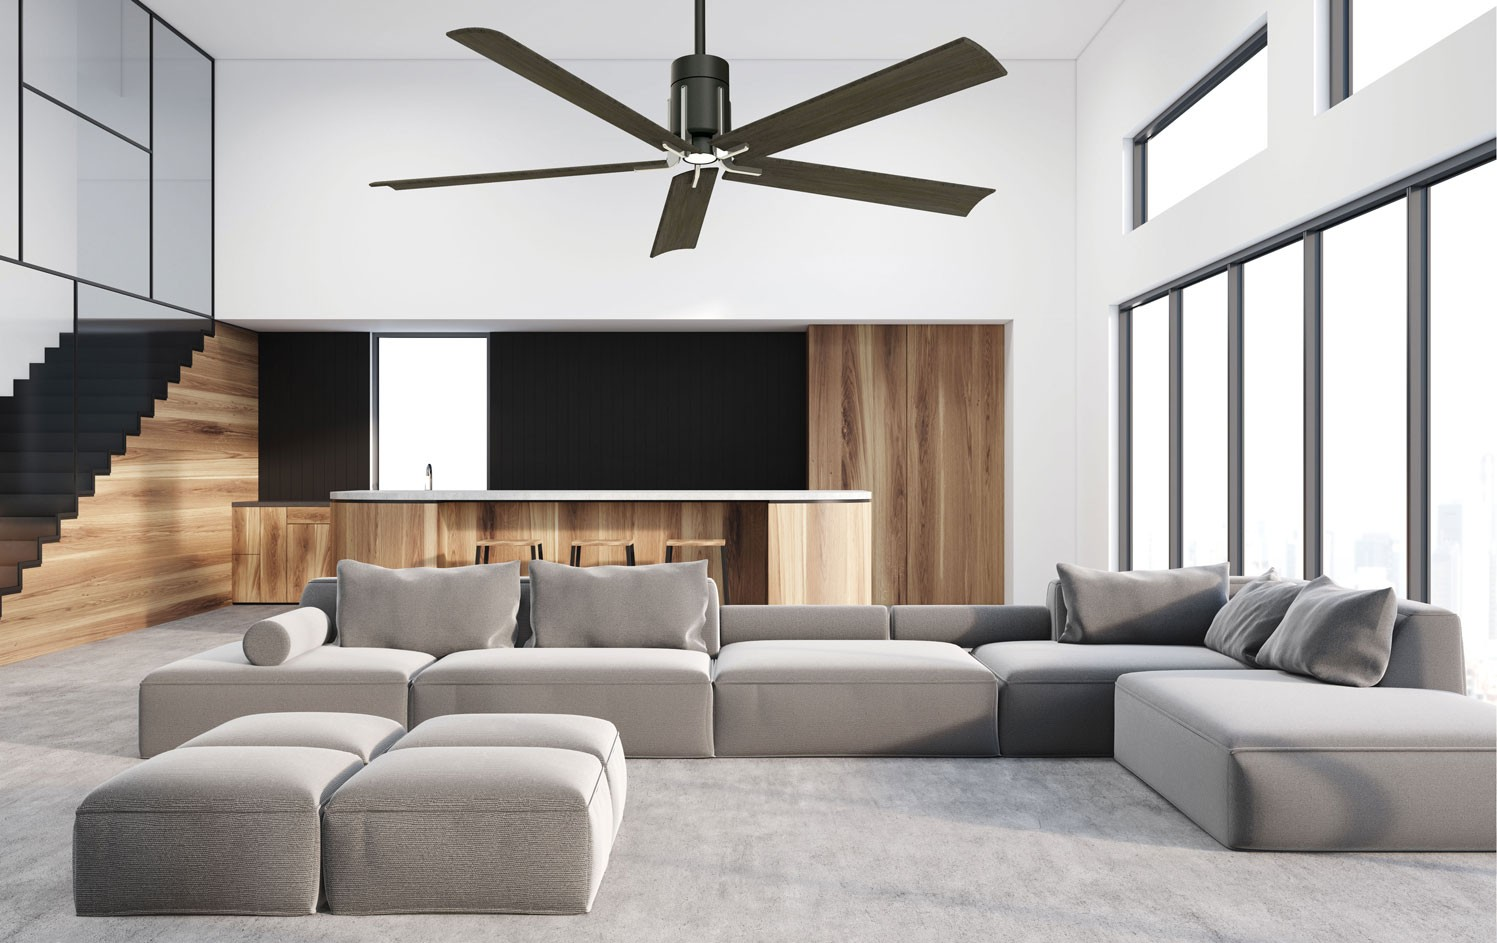 Clean ceiling fan with special handheld remote